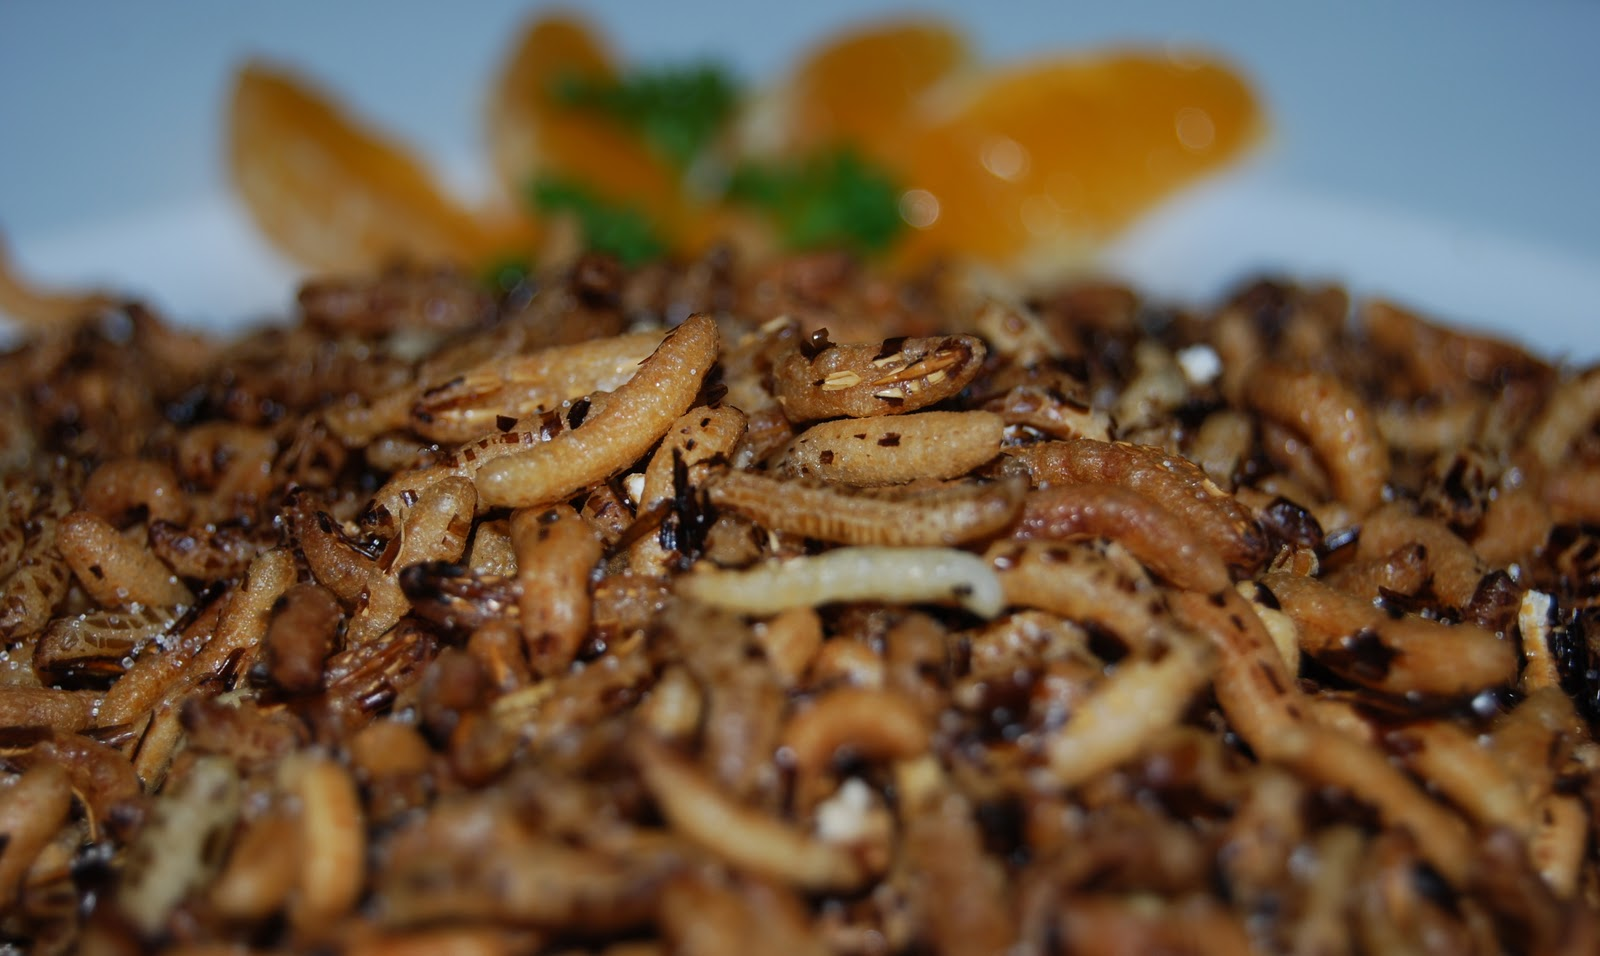 Fried Maggots Cocina viva: fried wild rice (arroz salvaje frito)